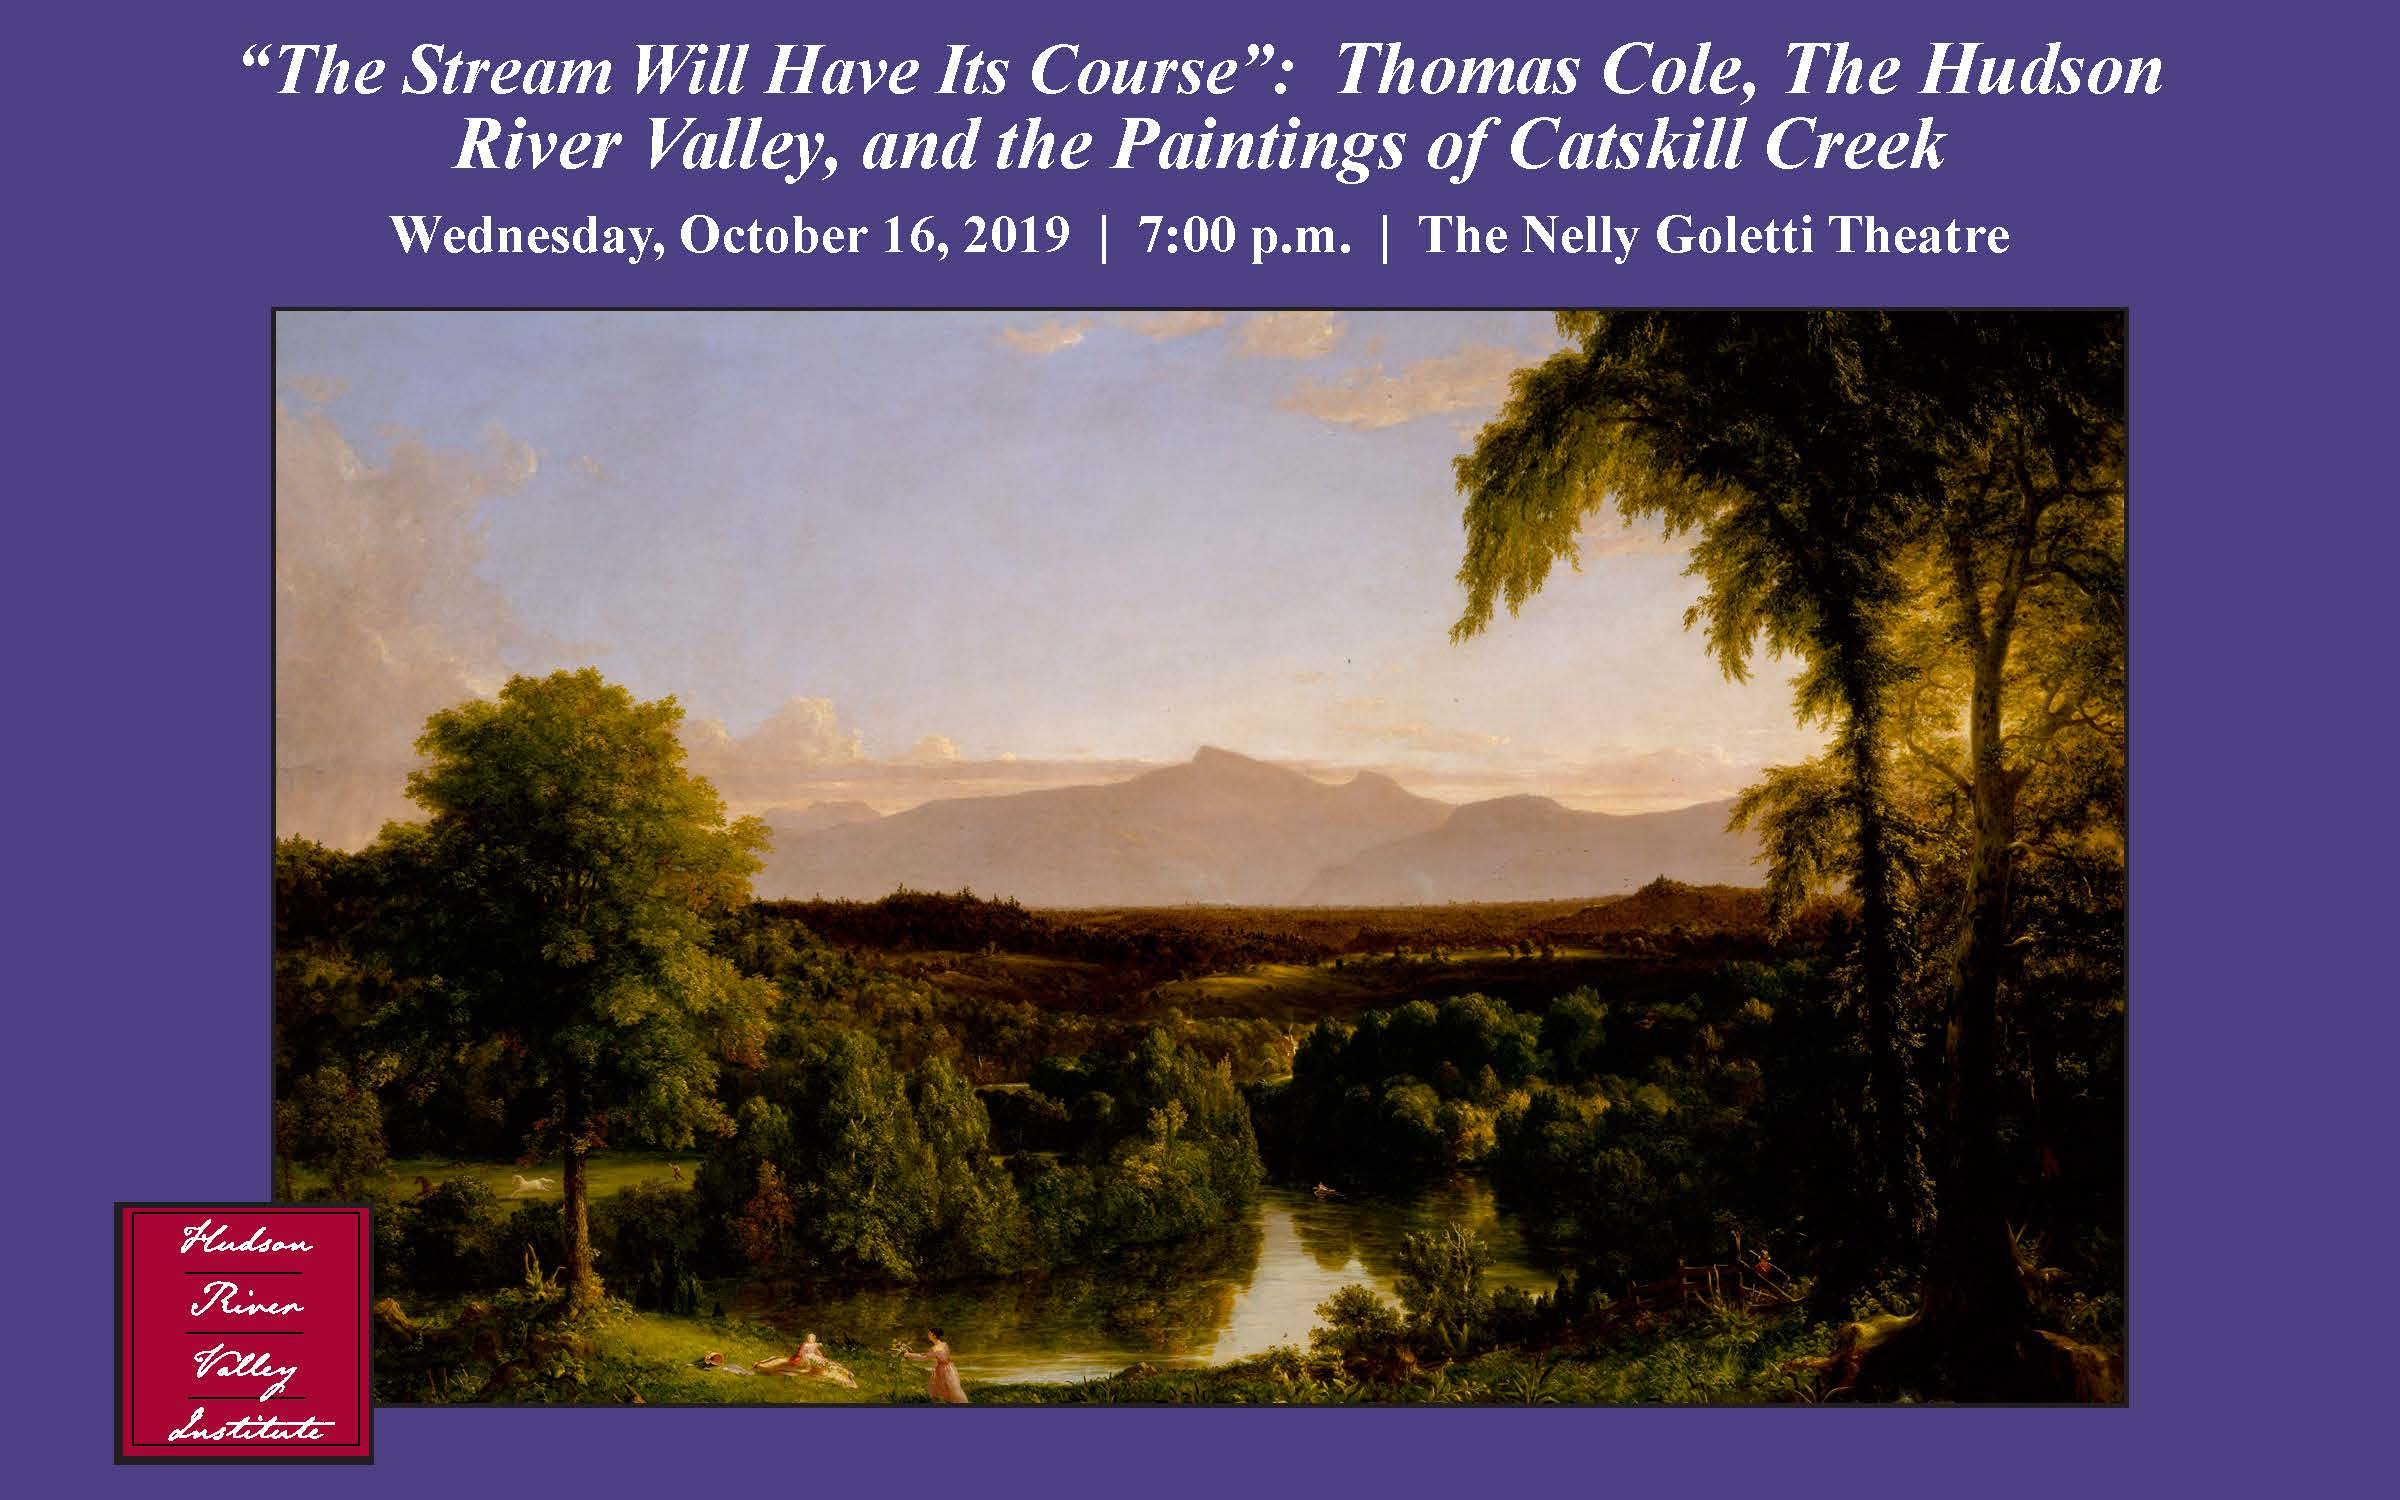 lecture postcard including one of Thomas Cole's paintings of the Catskill Creek